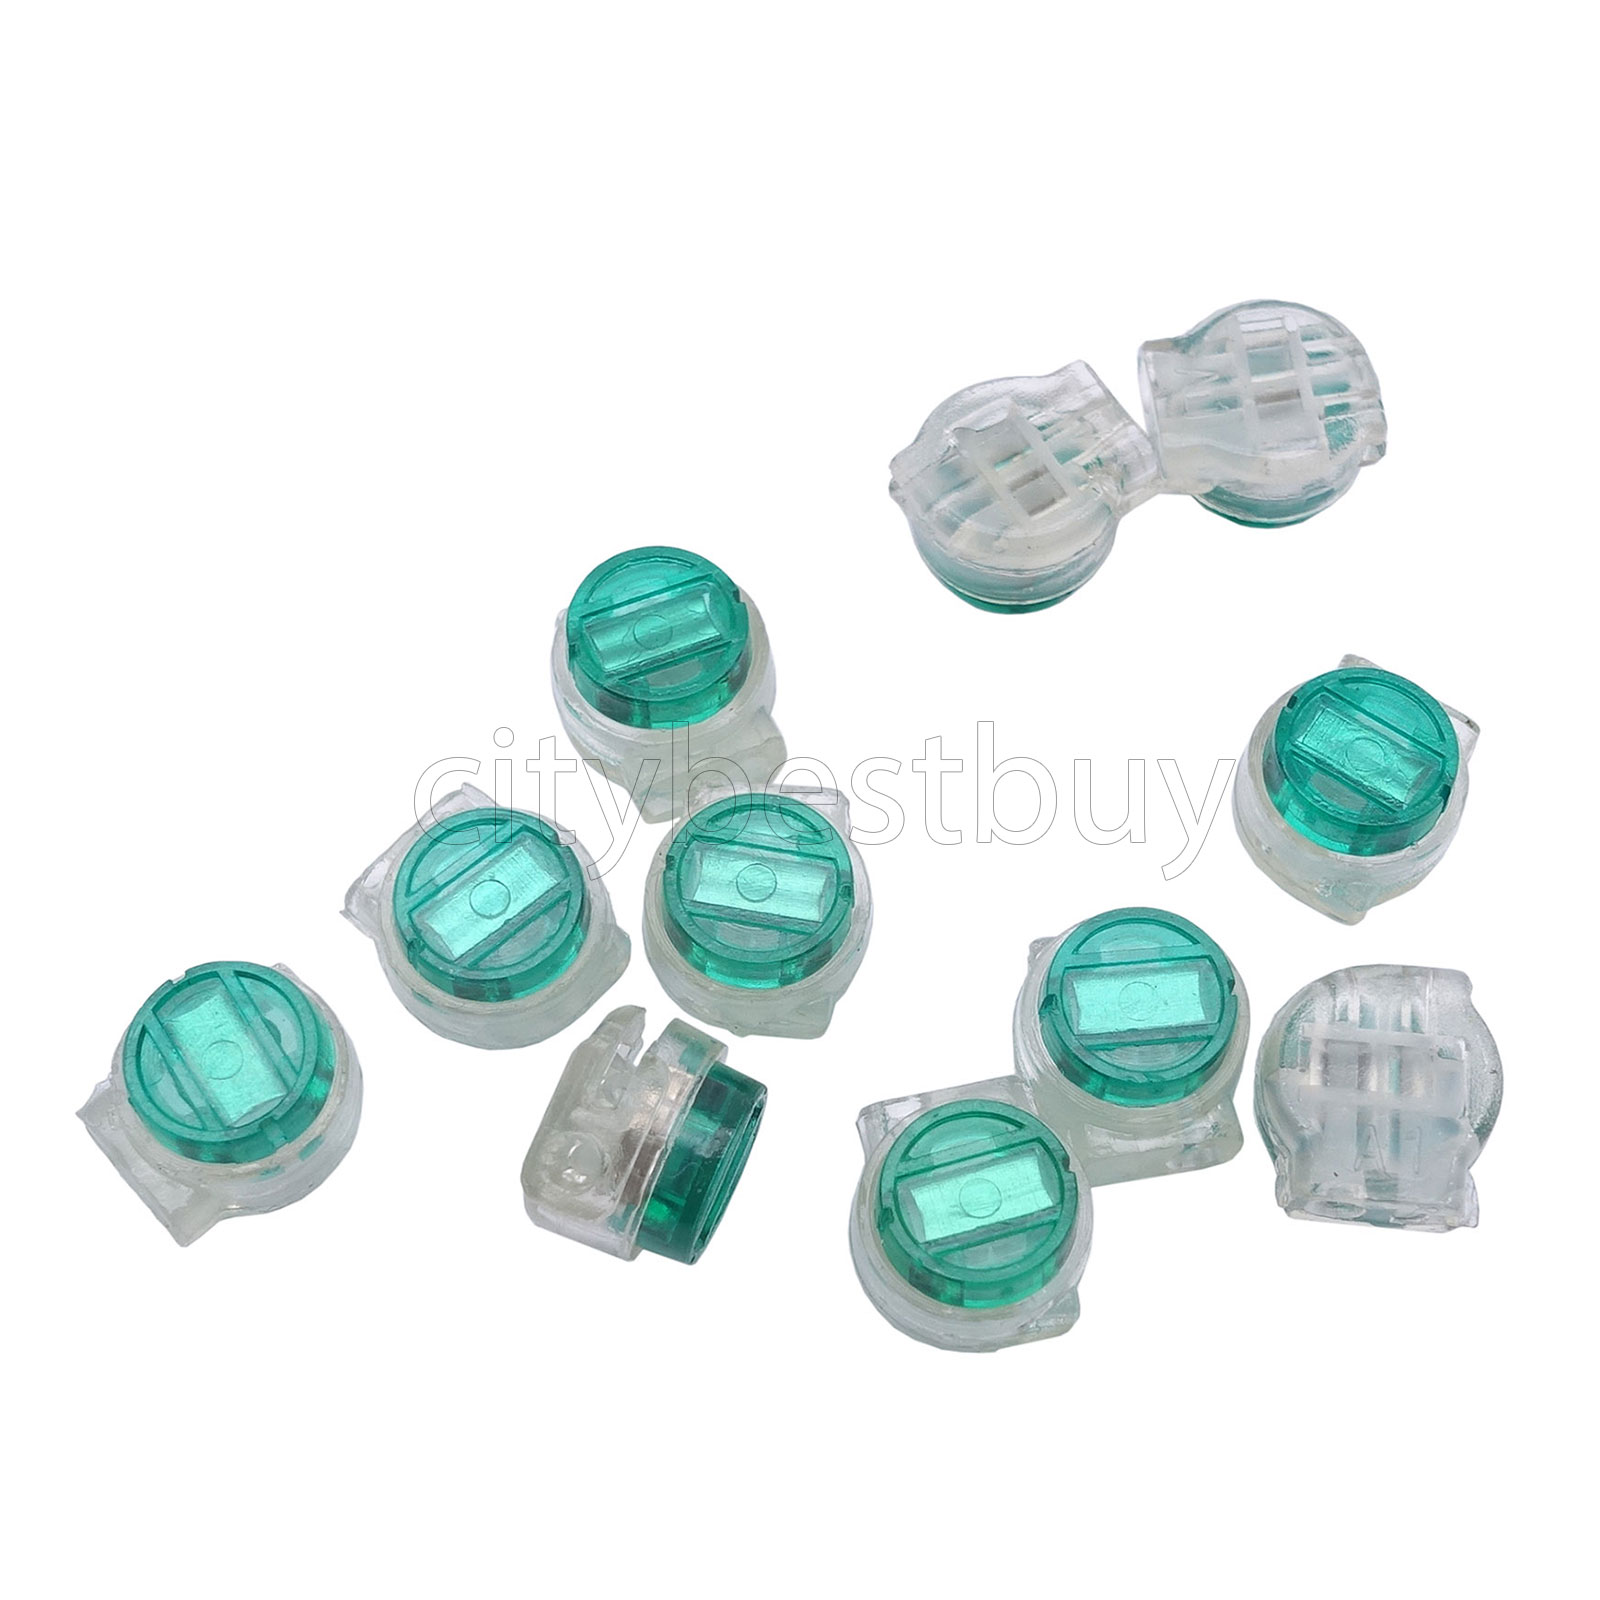 100pcs Wire Splice Terminal Connector K5 UG 2 Green For Telephone ...